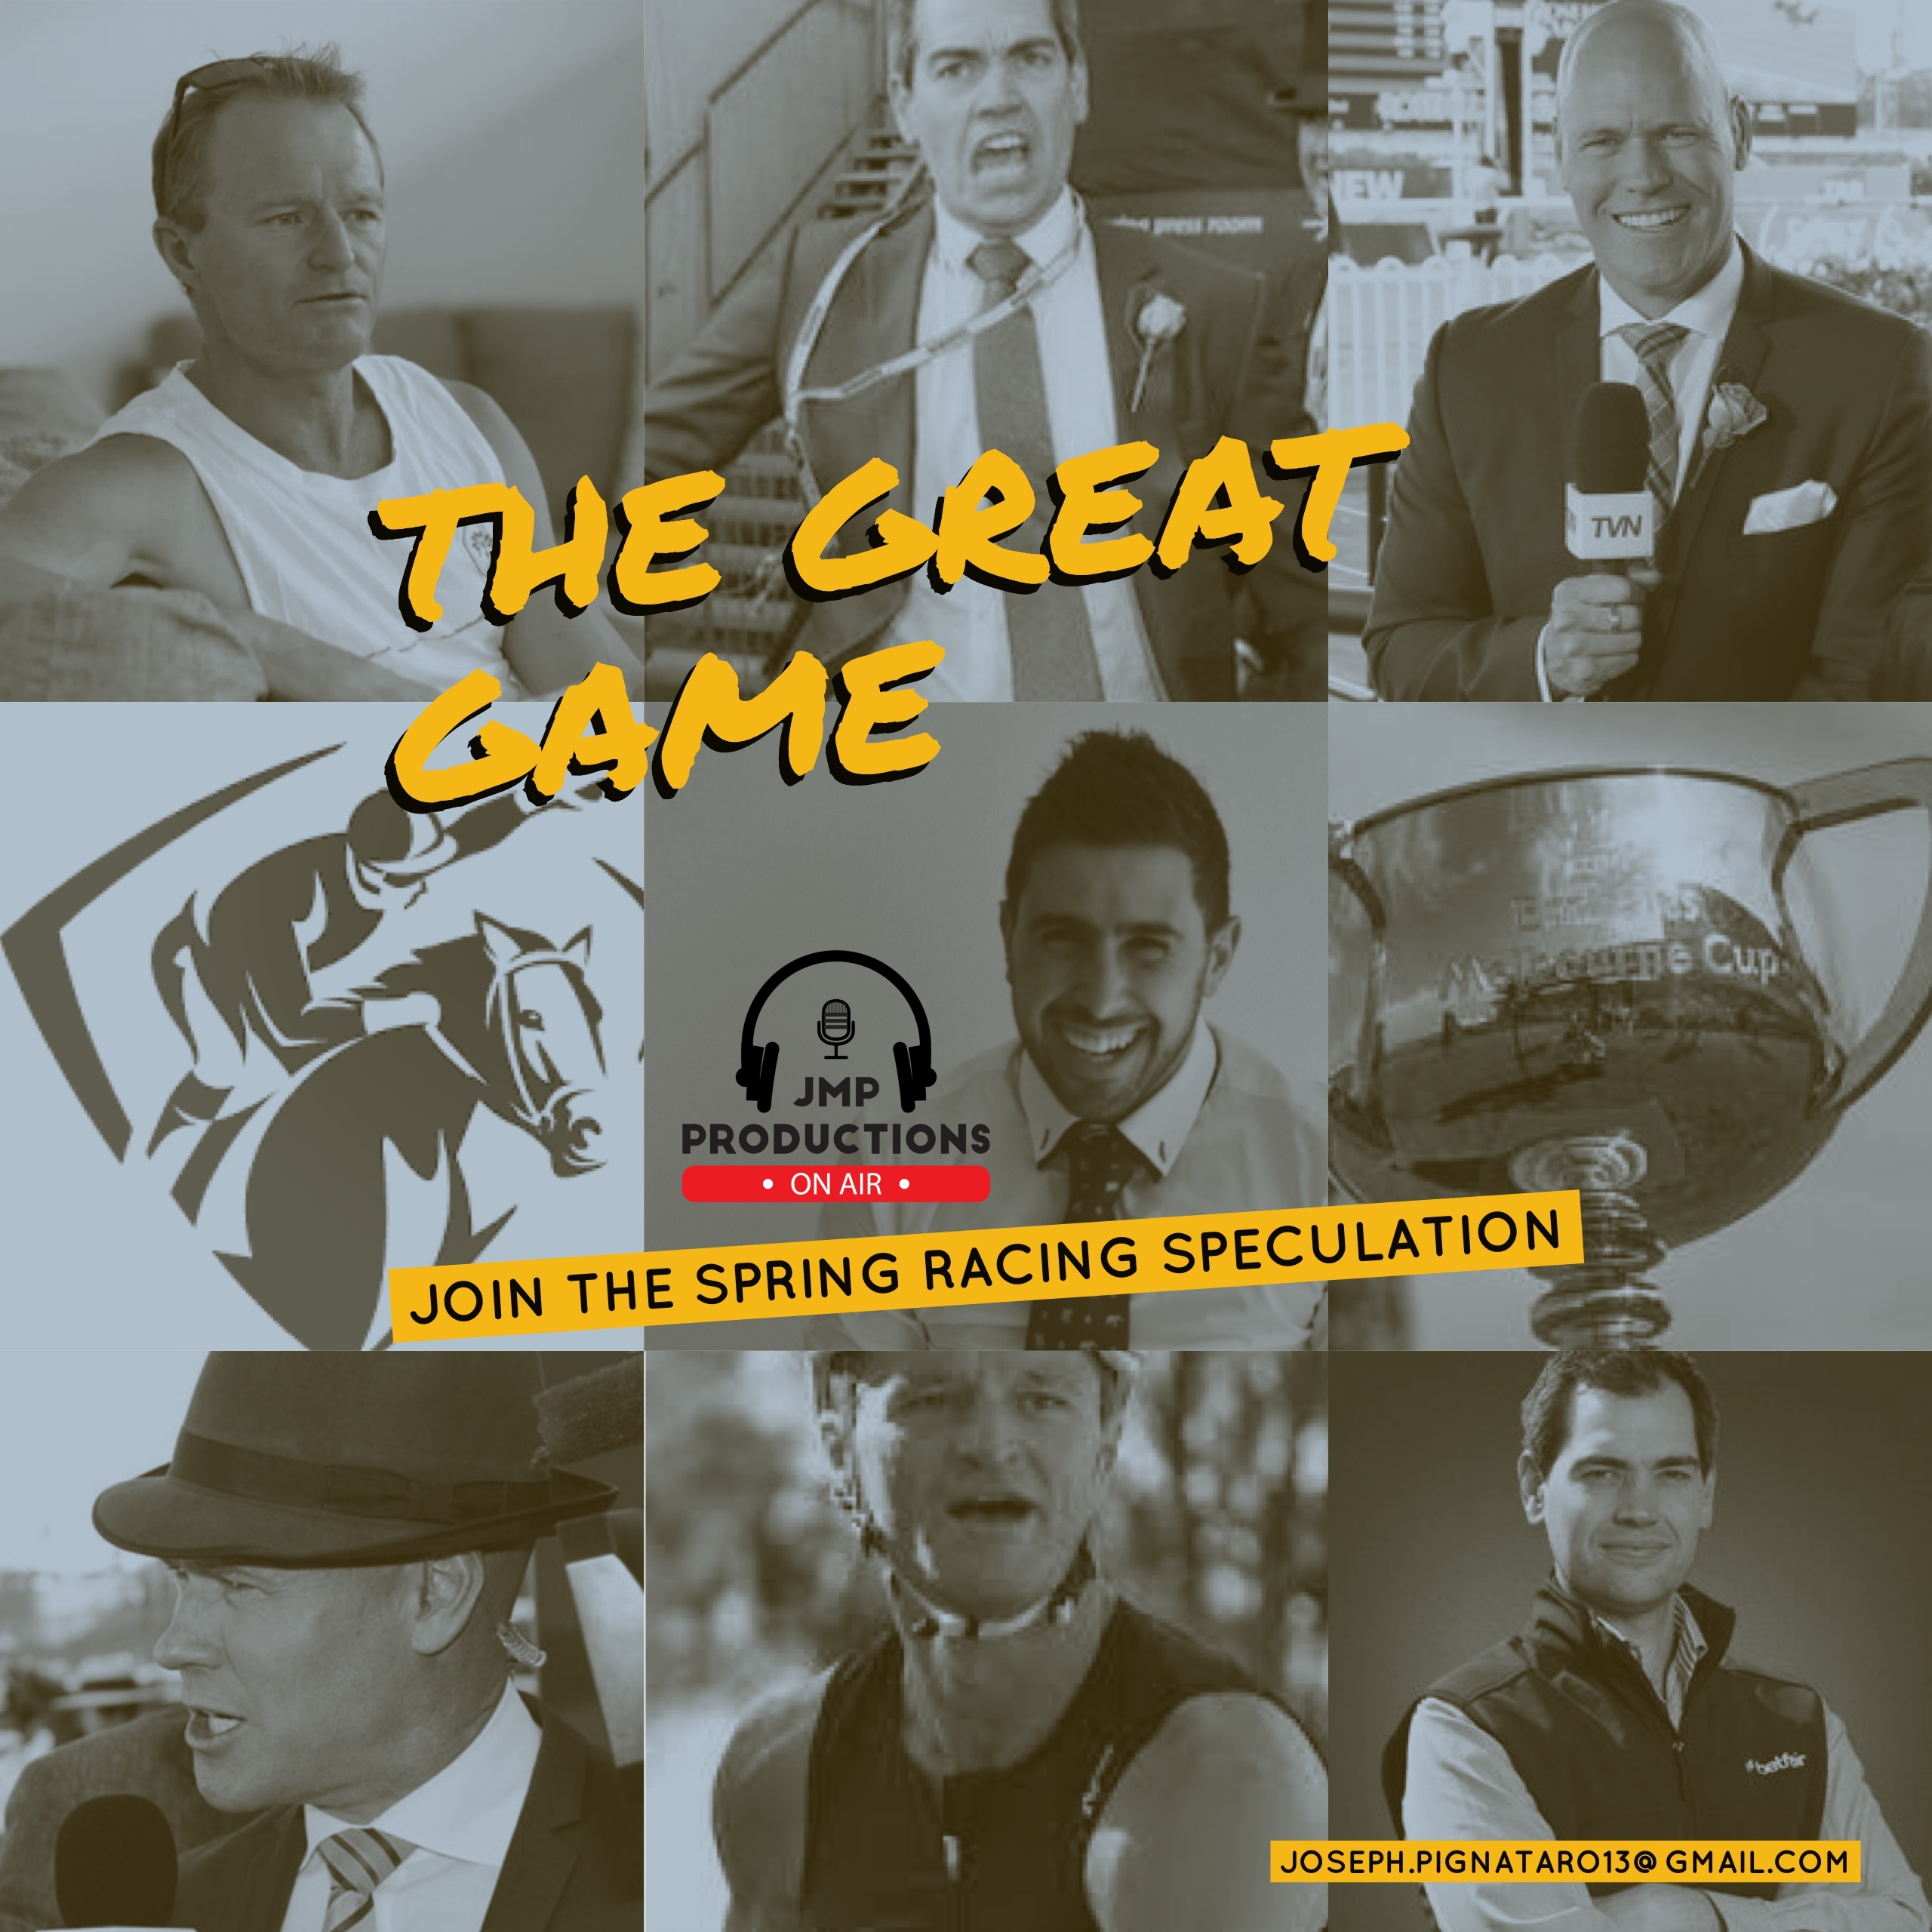 Episode 8 - The Great Game (October 19, 2018)